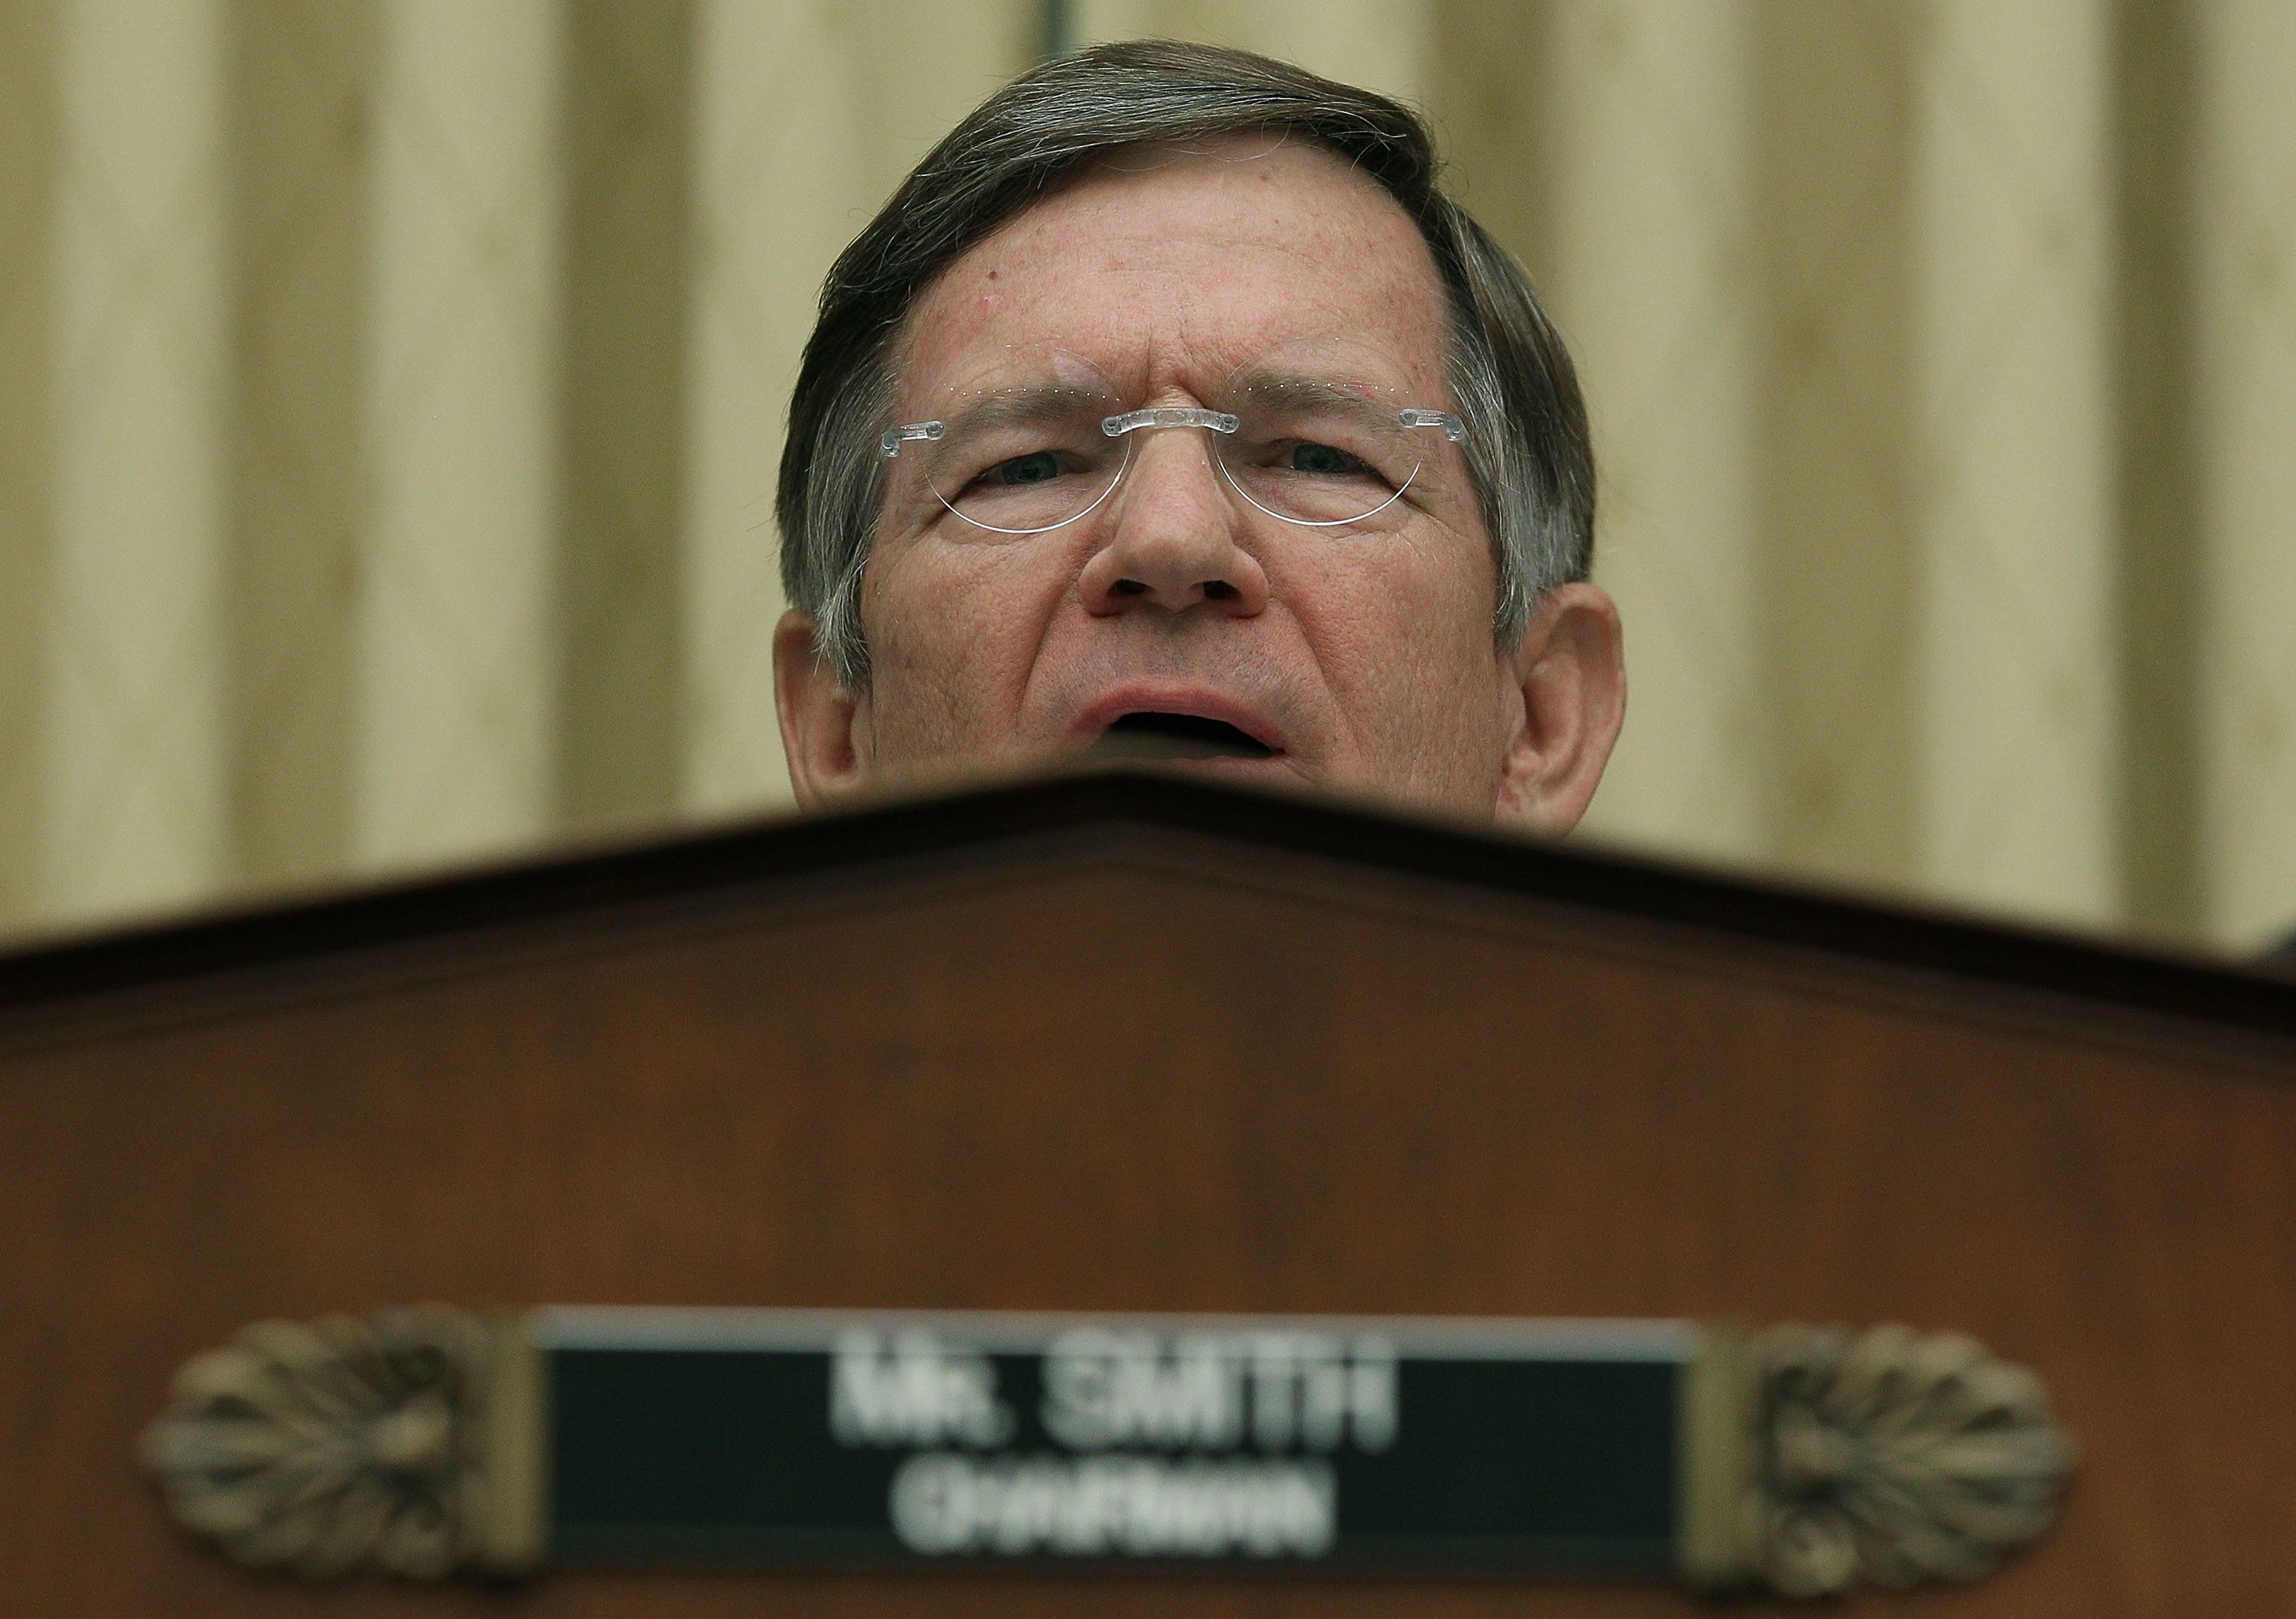 Rep. Lamar Smith (R-Texas), a noted climate change denier, chairs the House Science Committee.